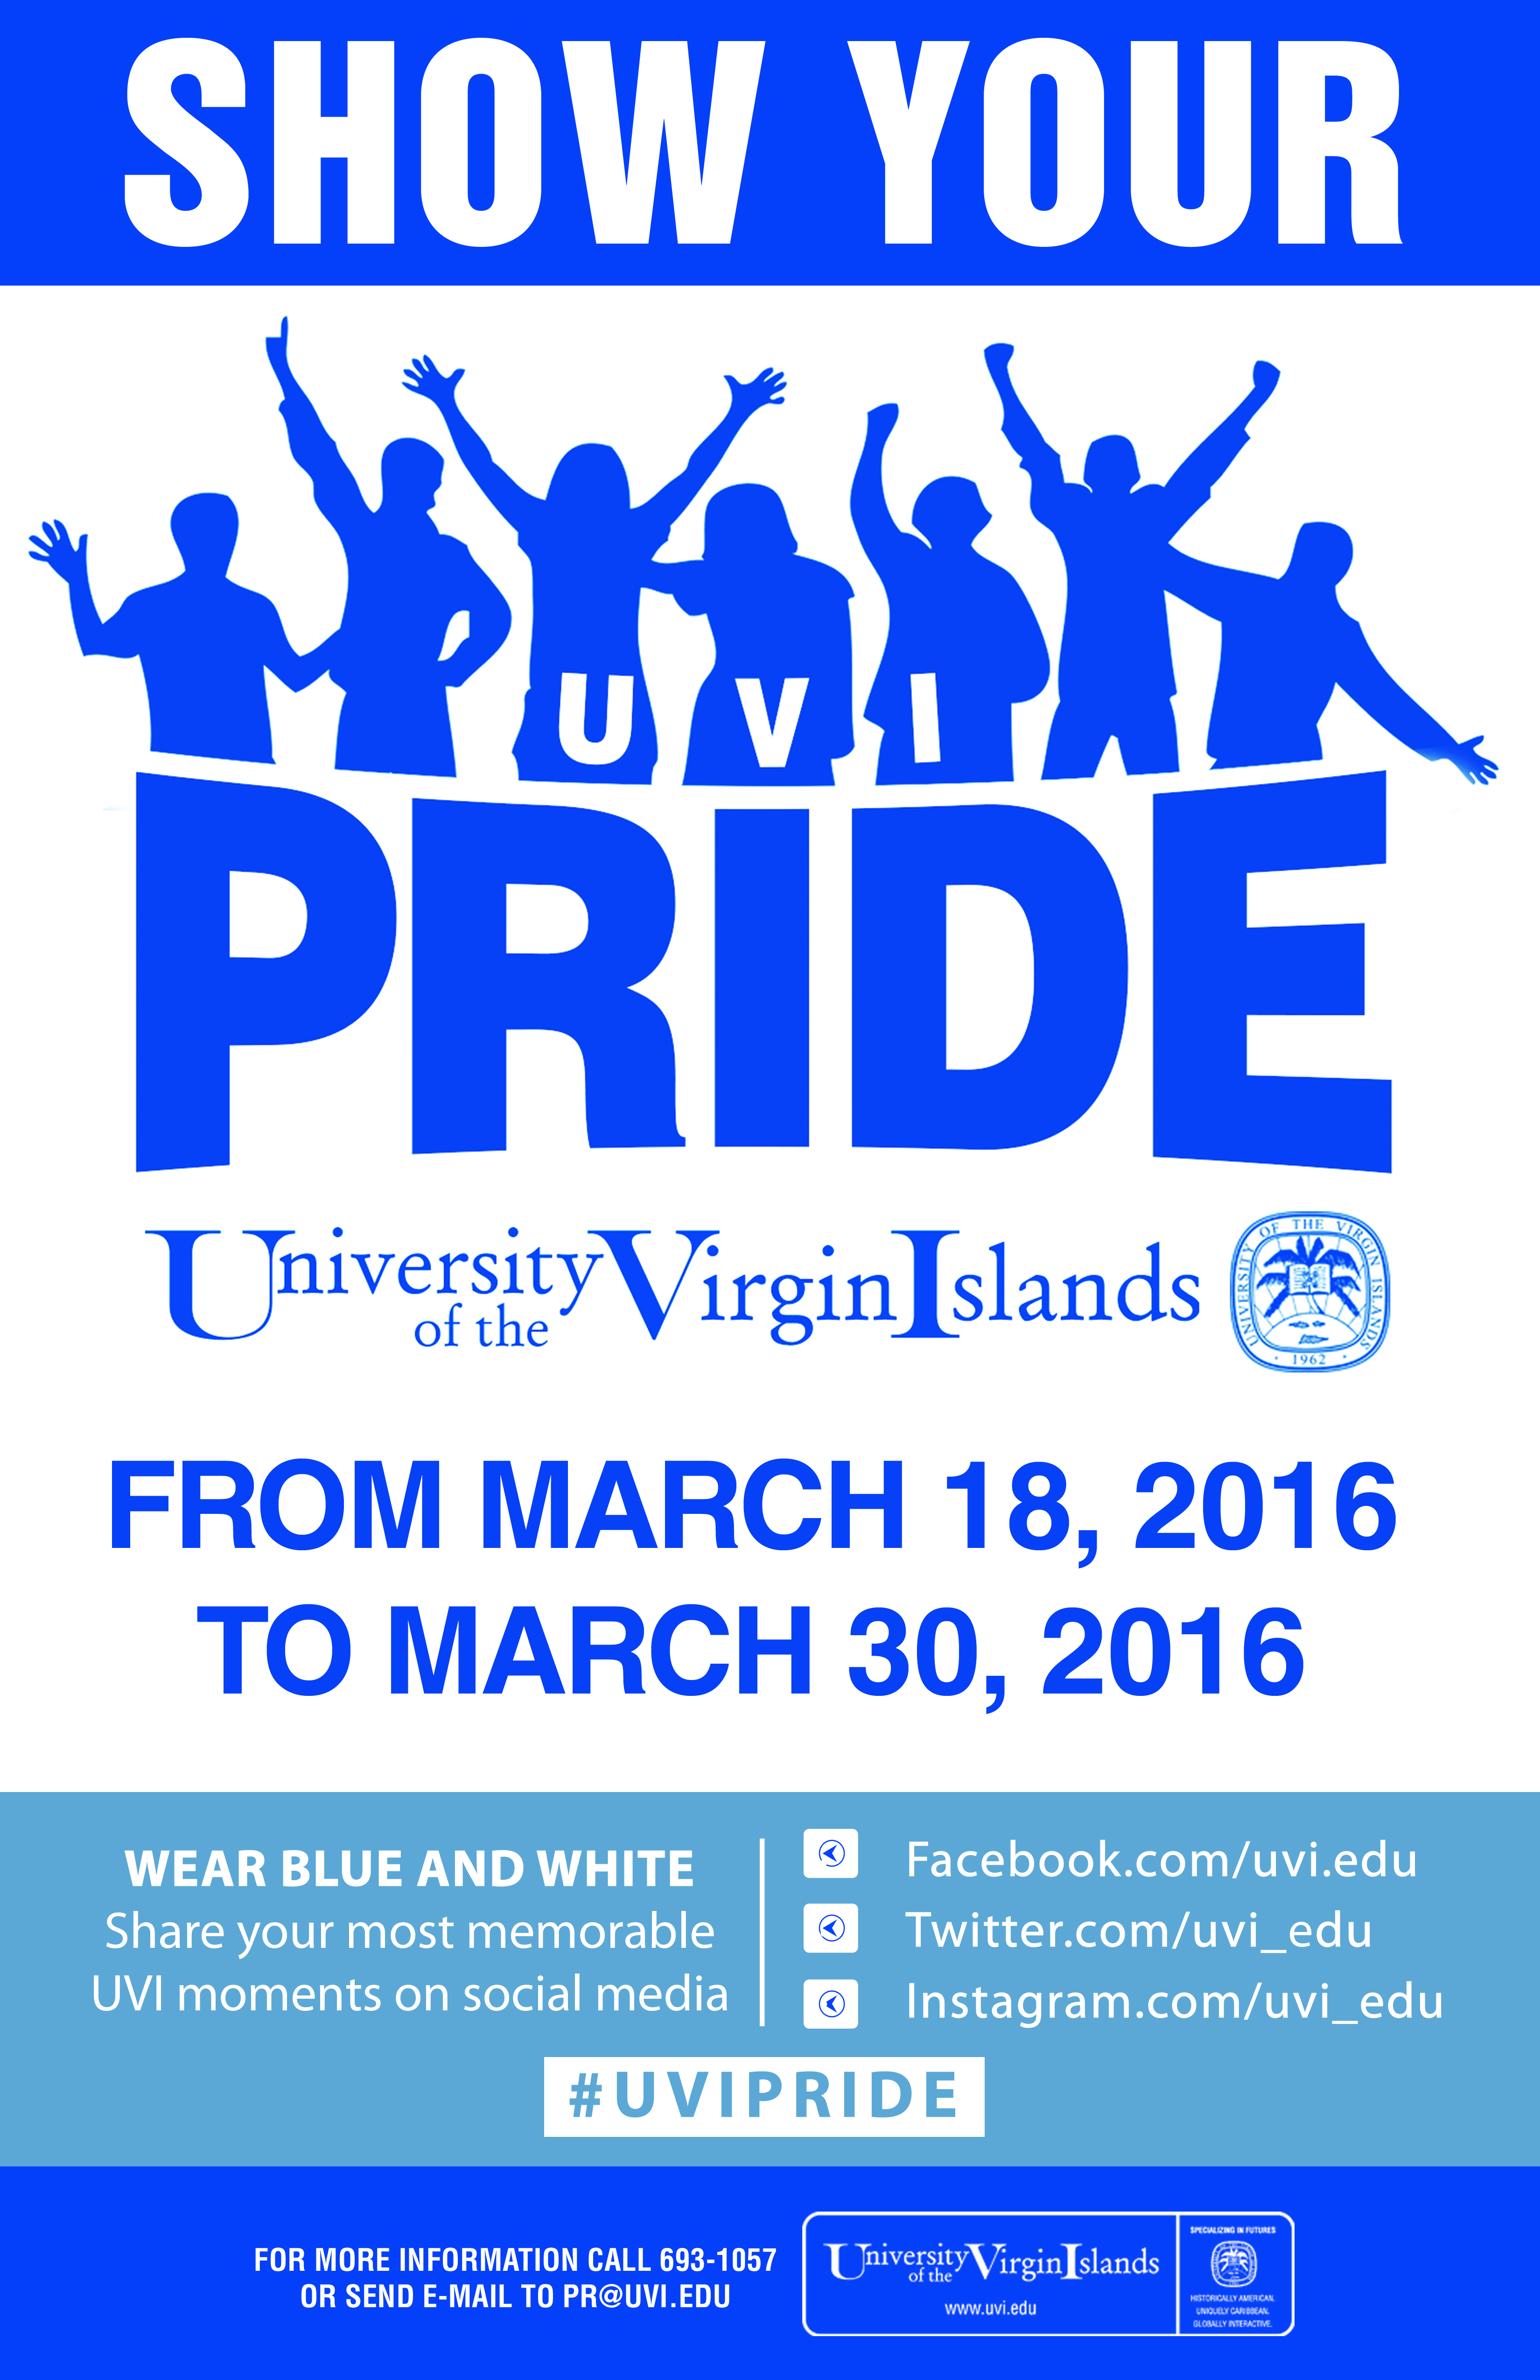 Show Your UVI Pride!